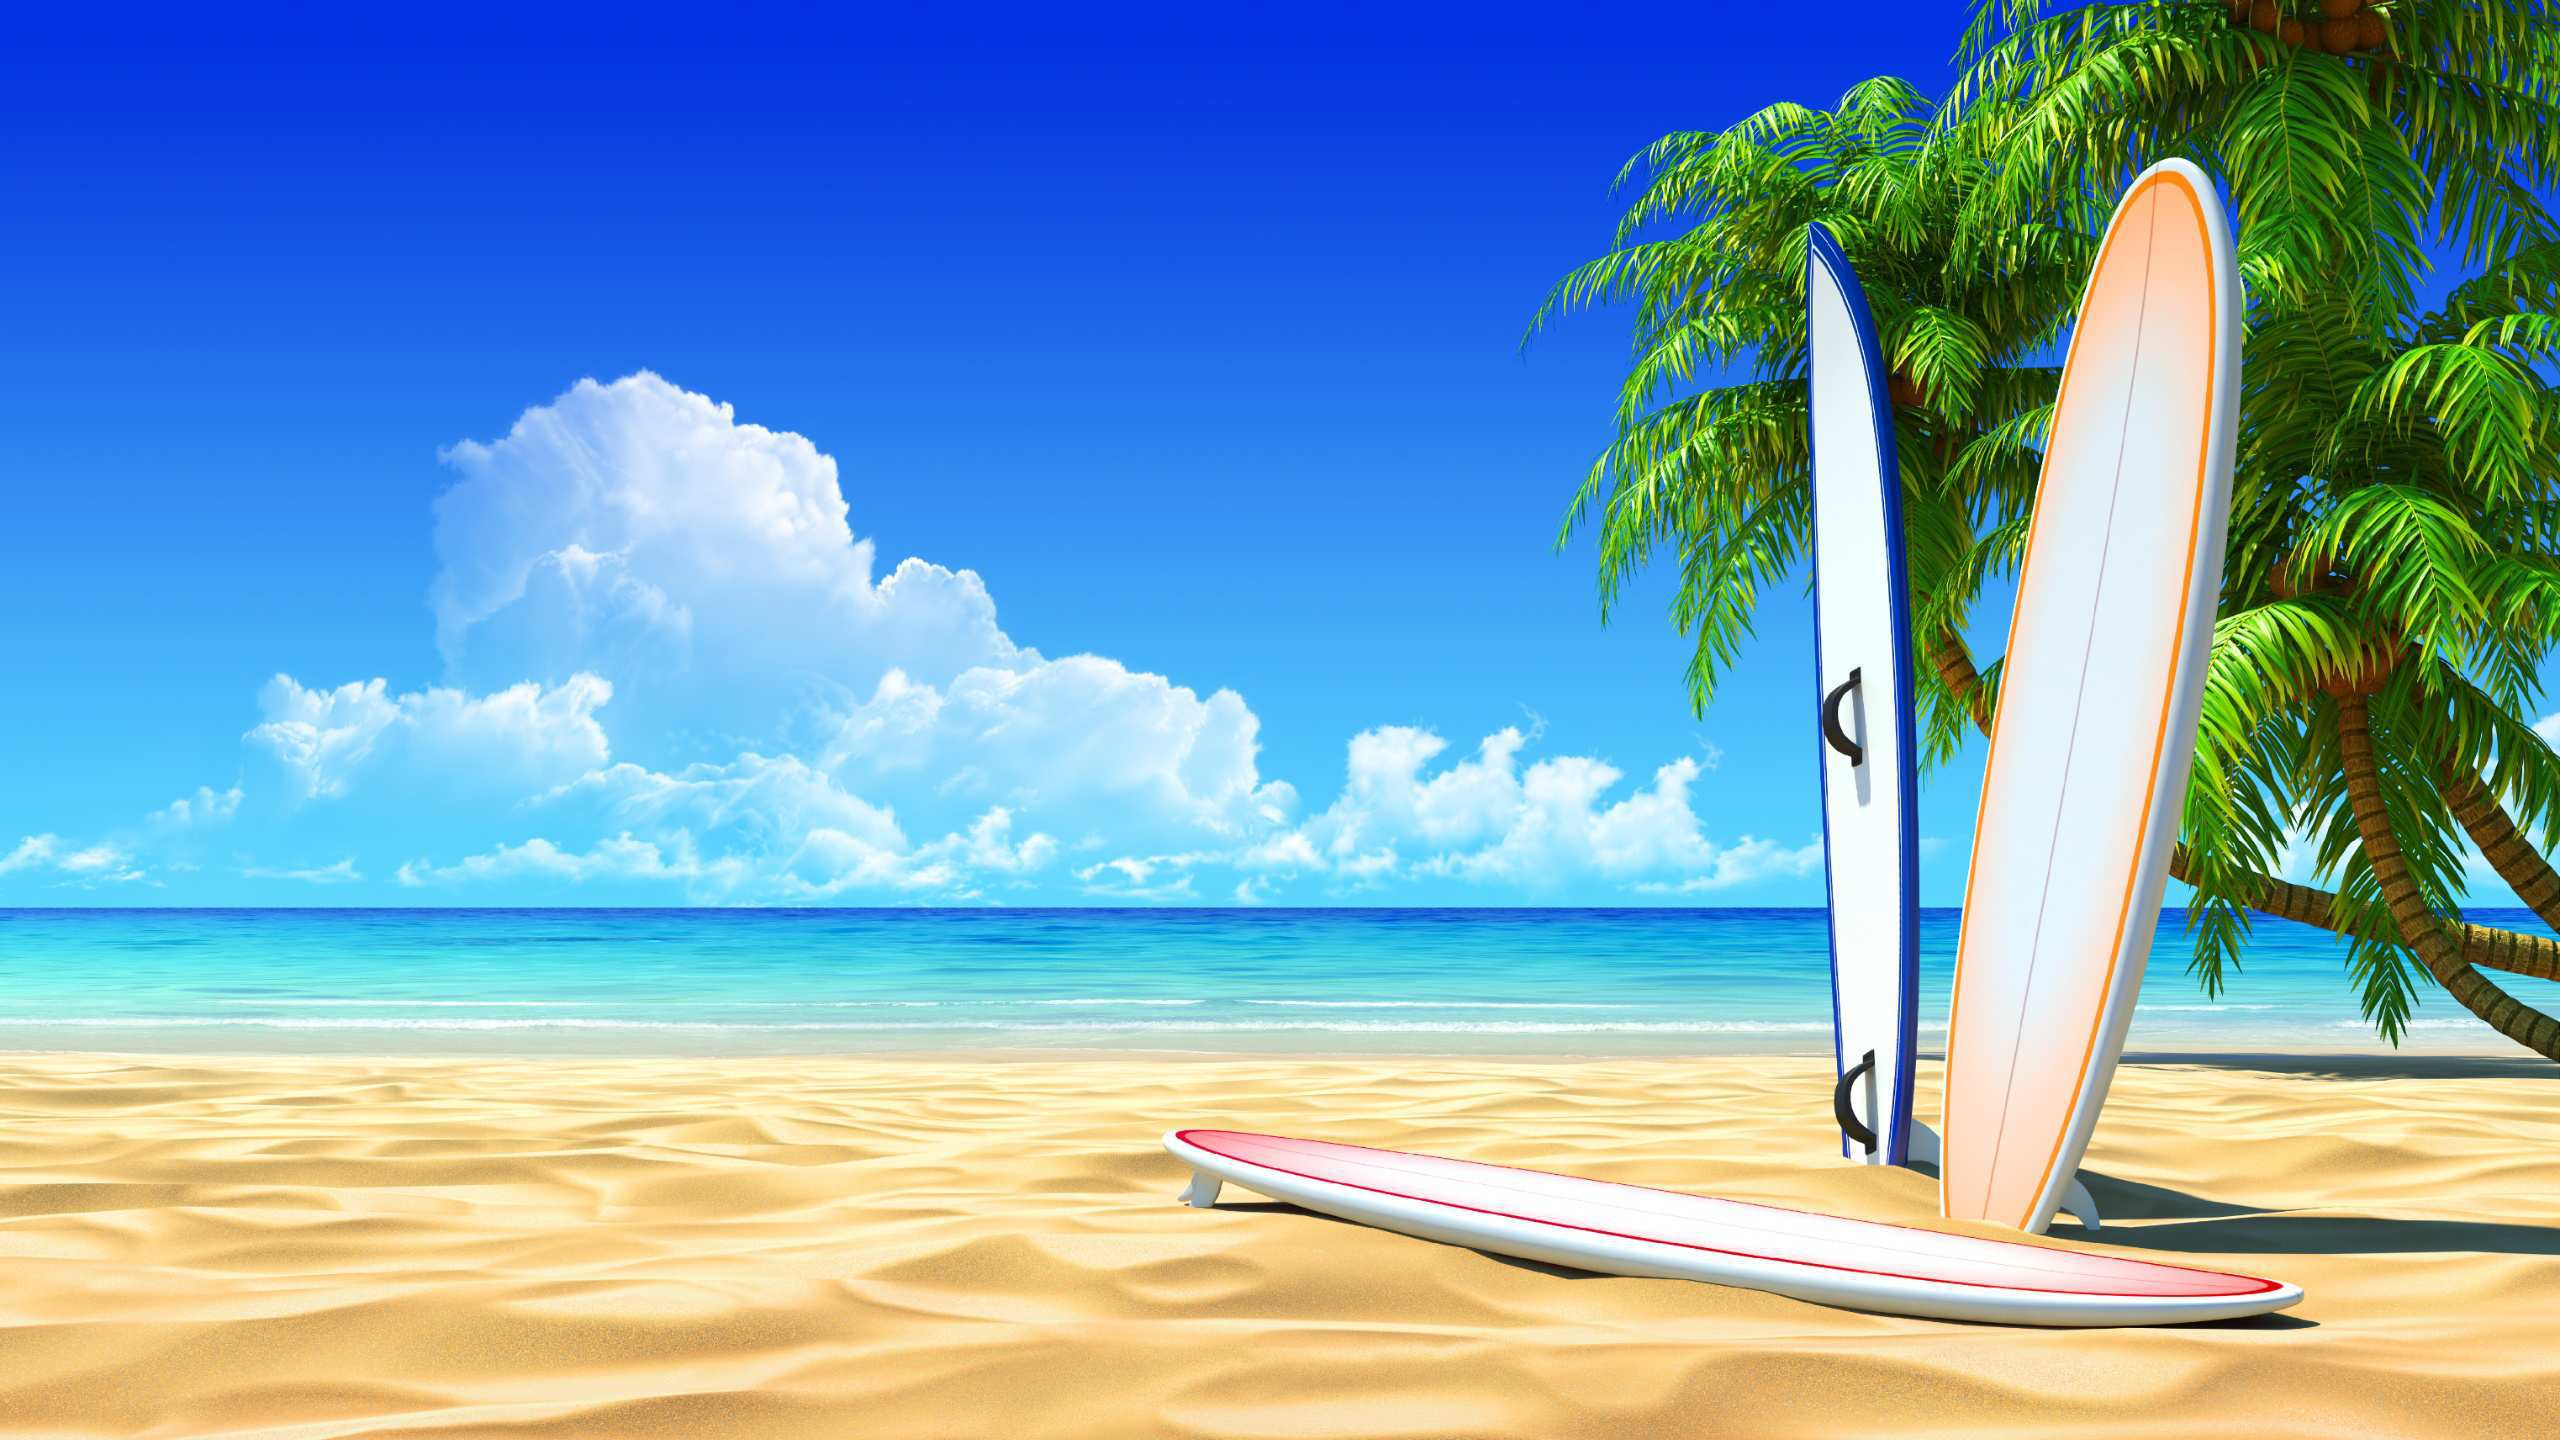 surfing board wallpapers and screensavers walljpegcom 2560x1440